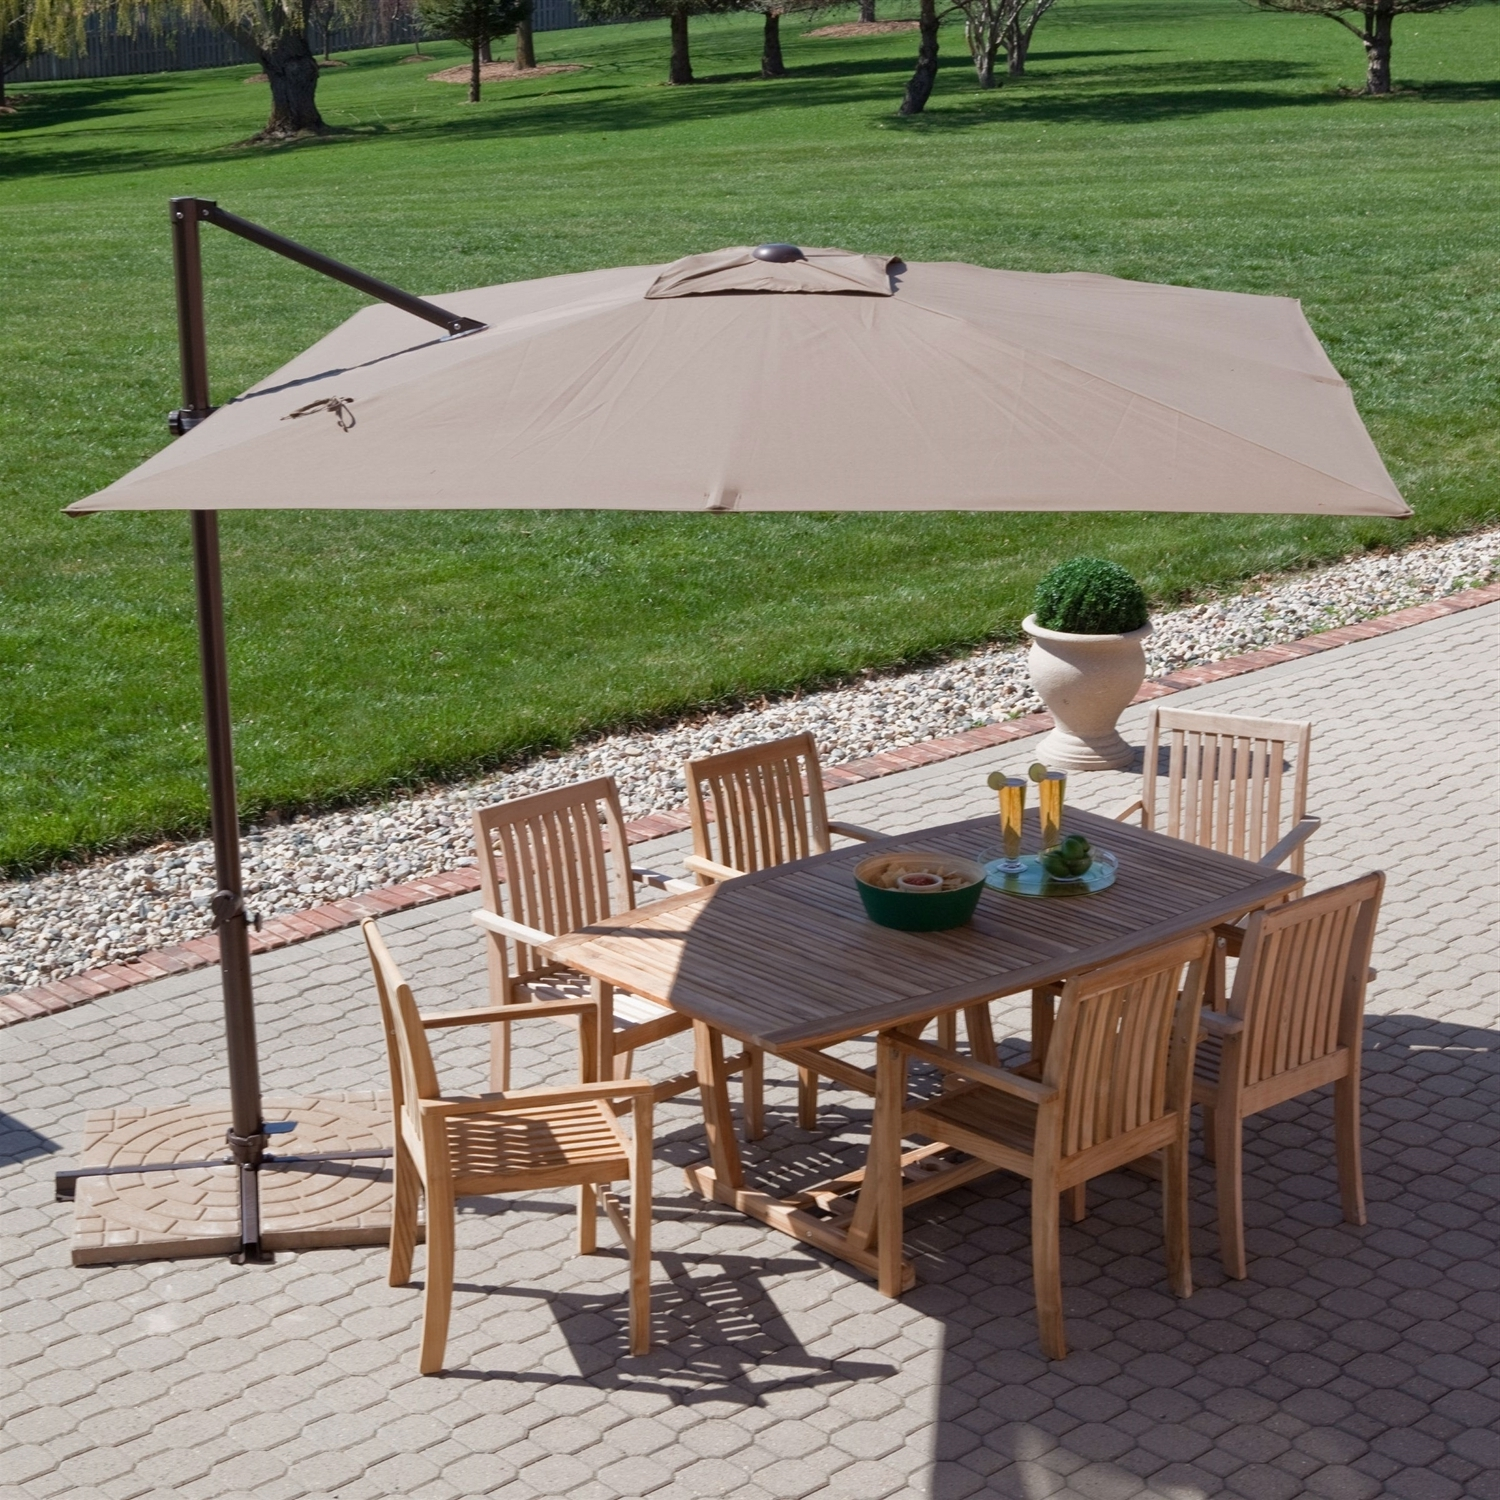 A Guide To Buying Offset Patio Umbrella – Blogbeen Inside Widely Used Patio Umbrellas With Table (View 10 of 20)